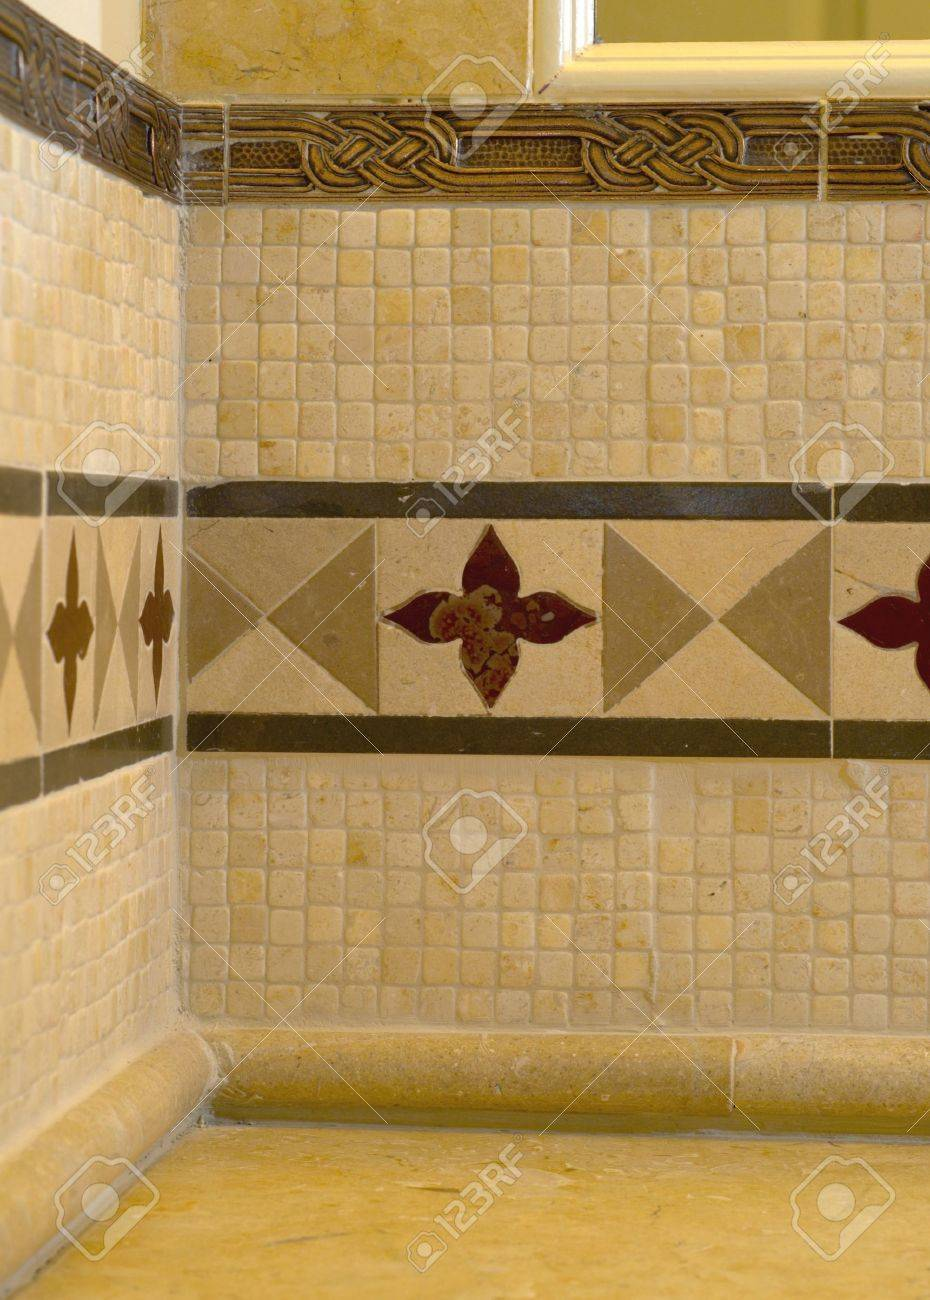 Tile work in bathrooms - Detail Custom Tile Work Bathroom Backsplash Wall Stock Photo 682439